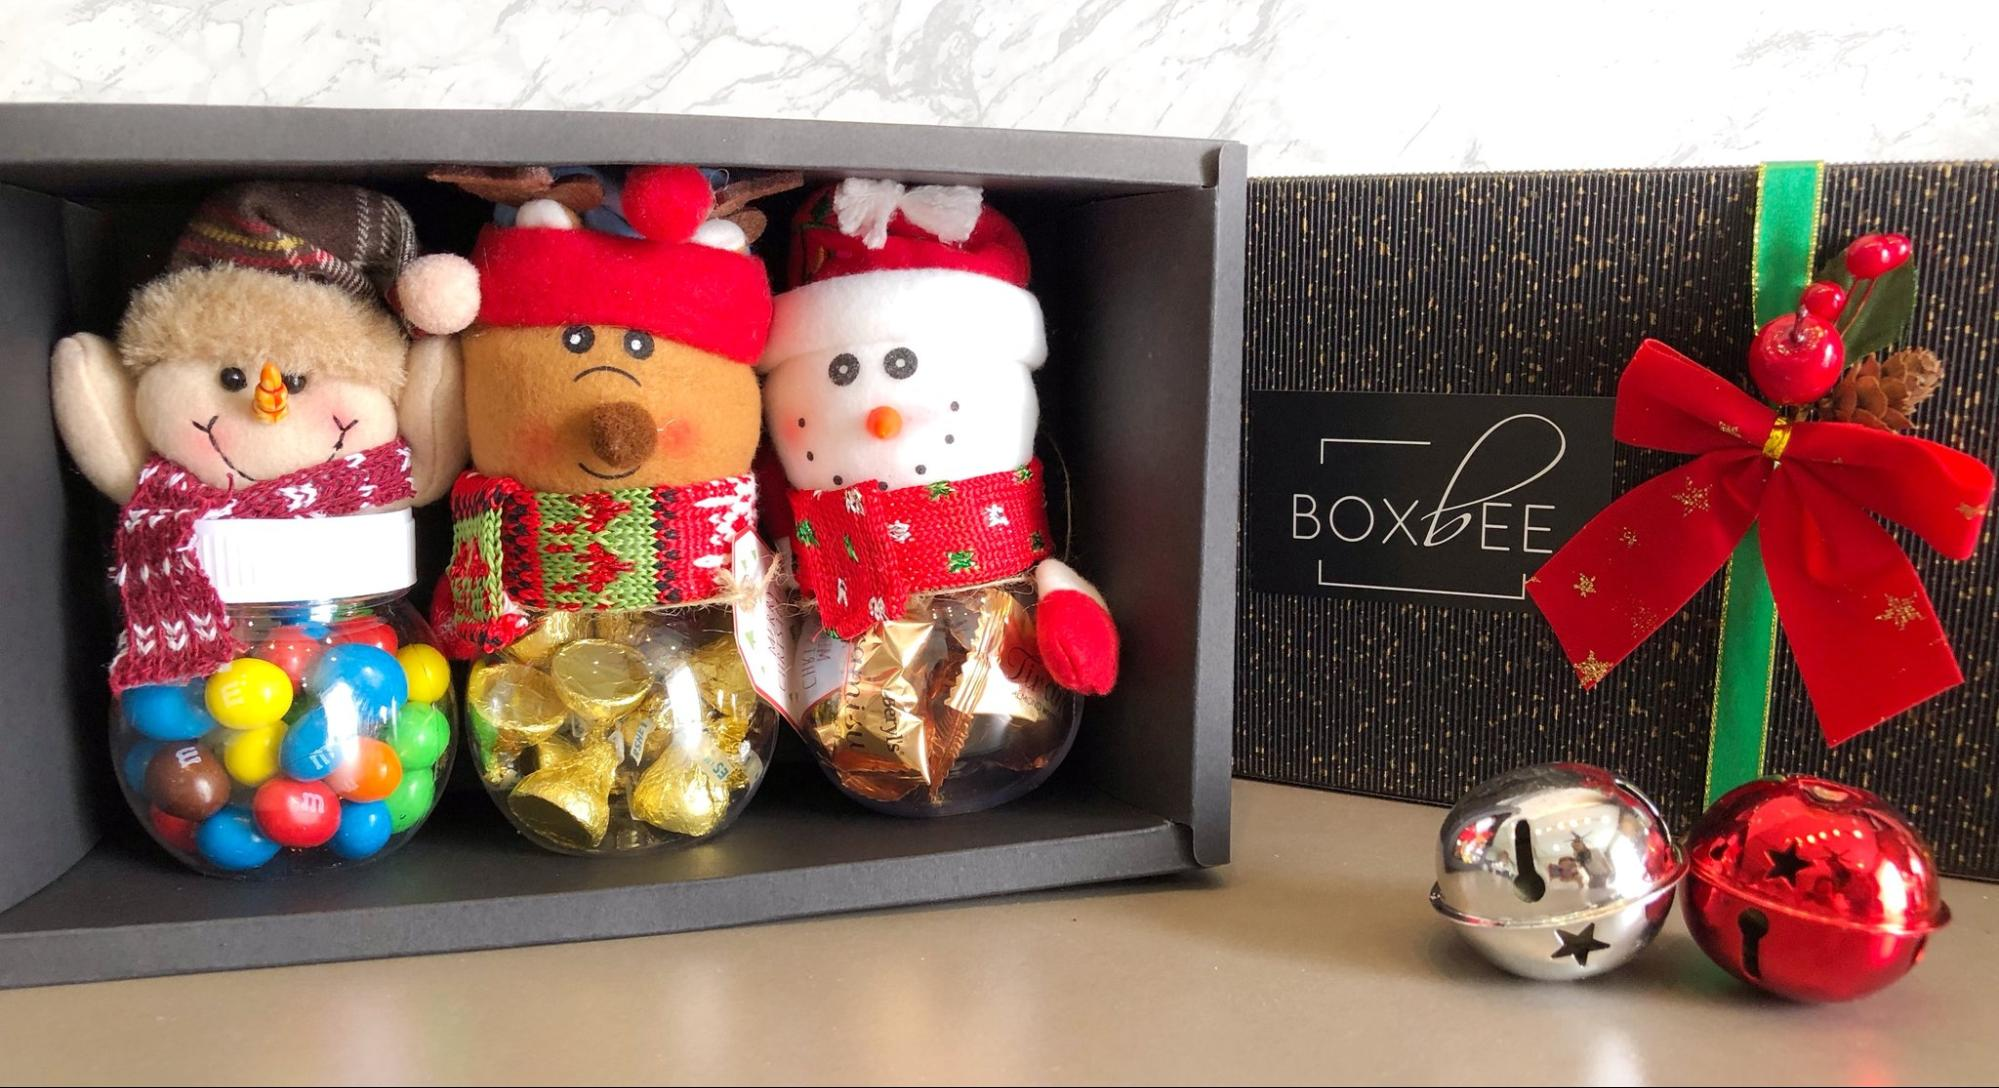 BoxBee Christmas-themed subscription boxes